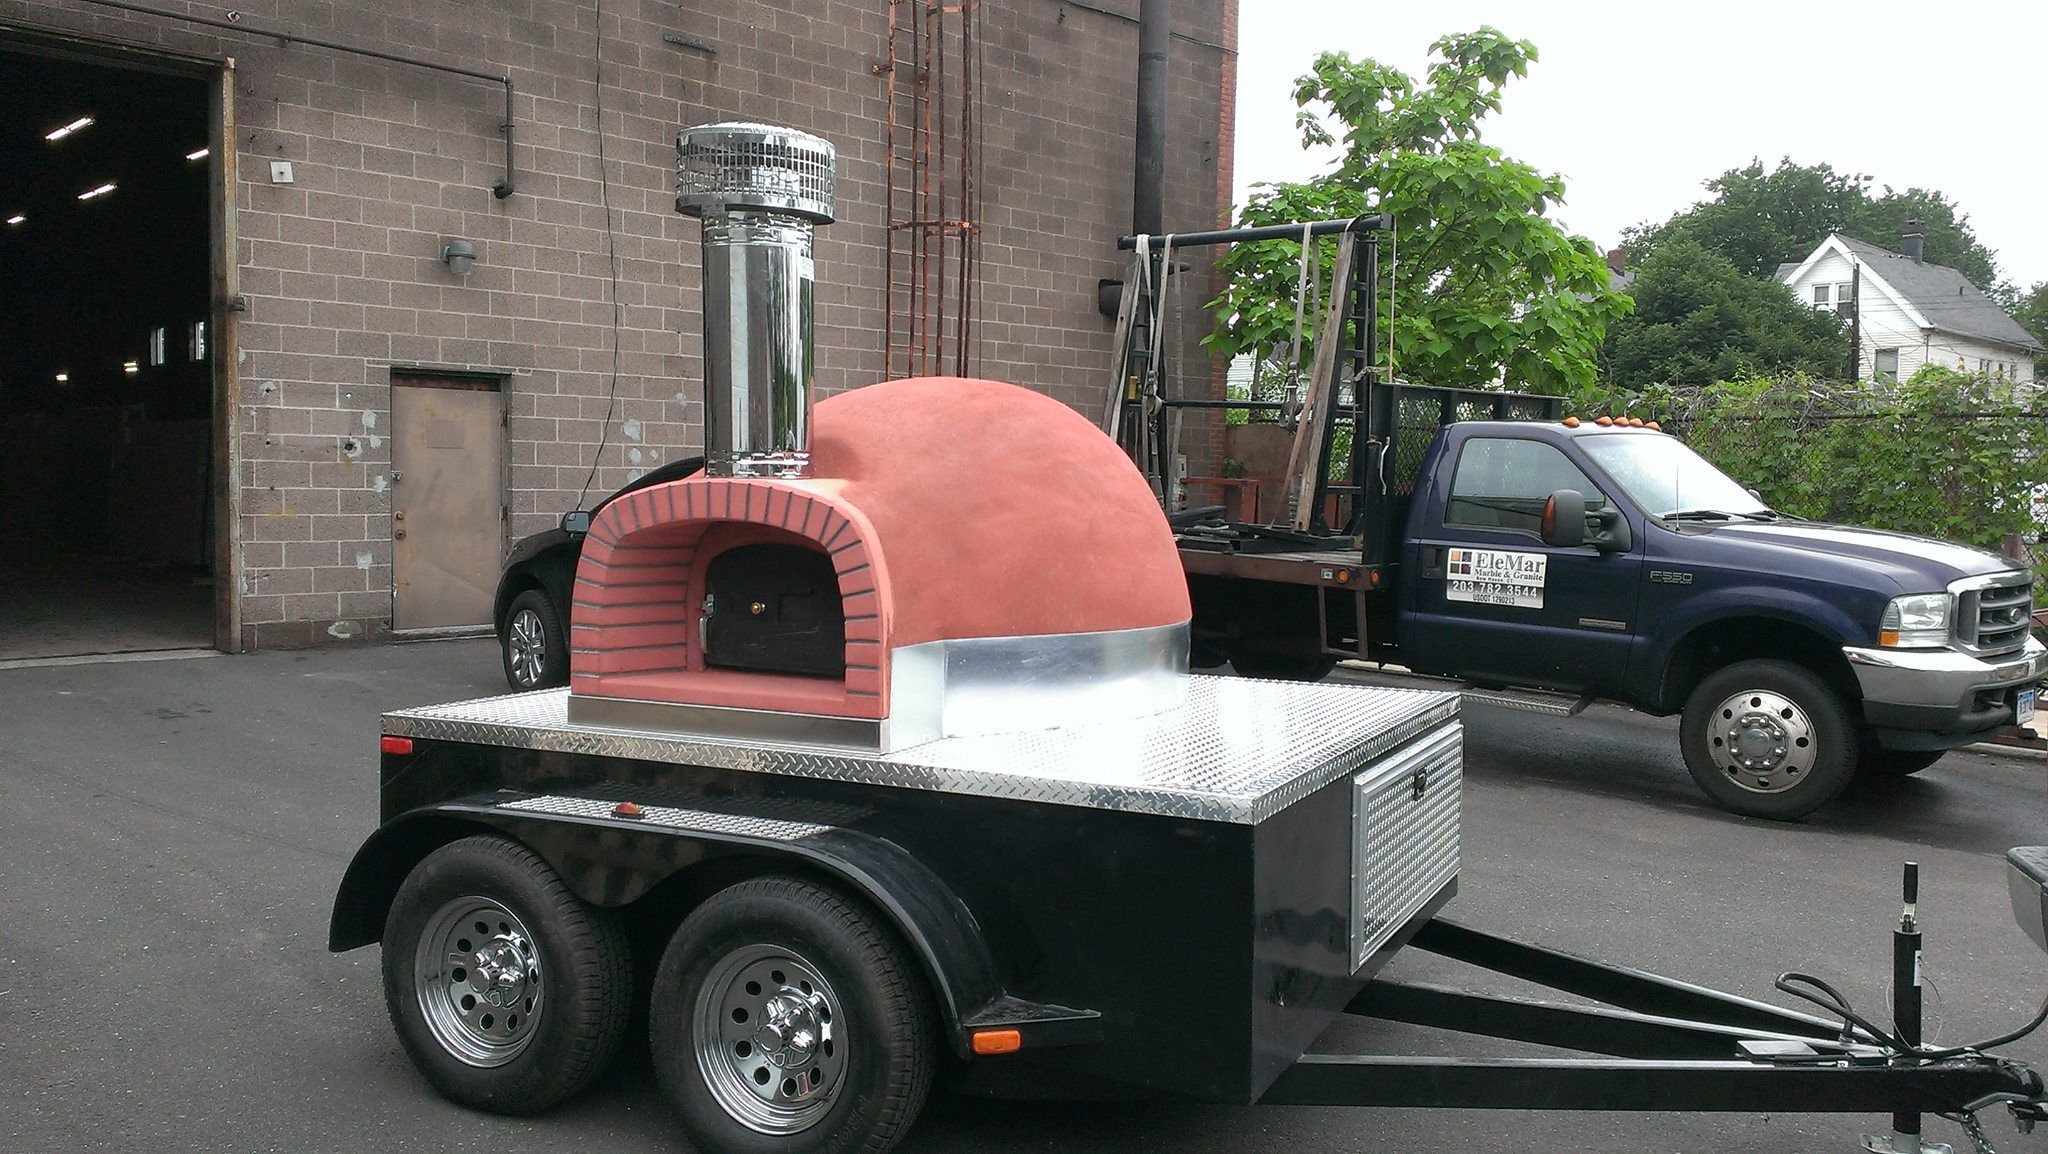 Considering a Mobile Wood Fired Pizza Business